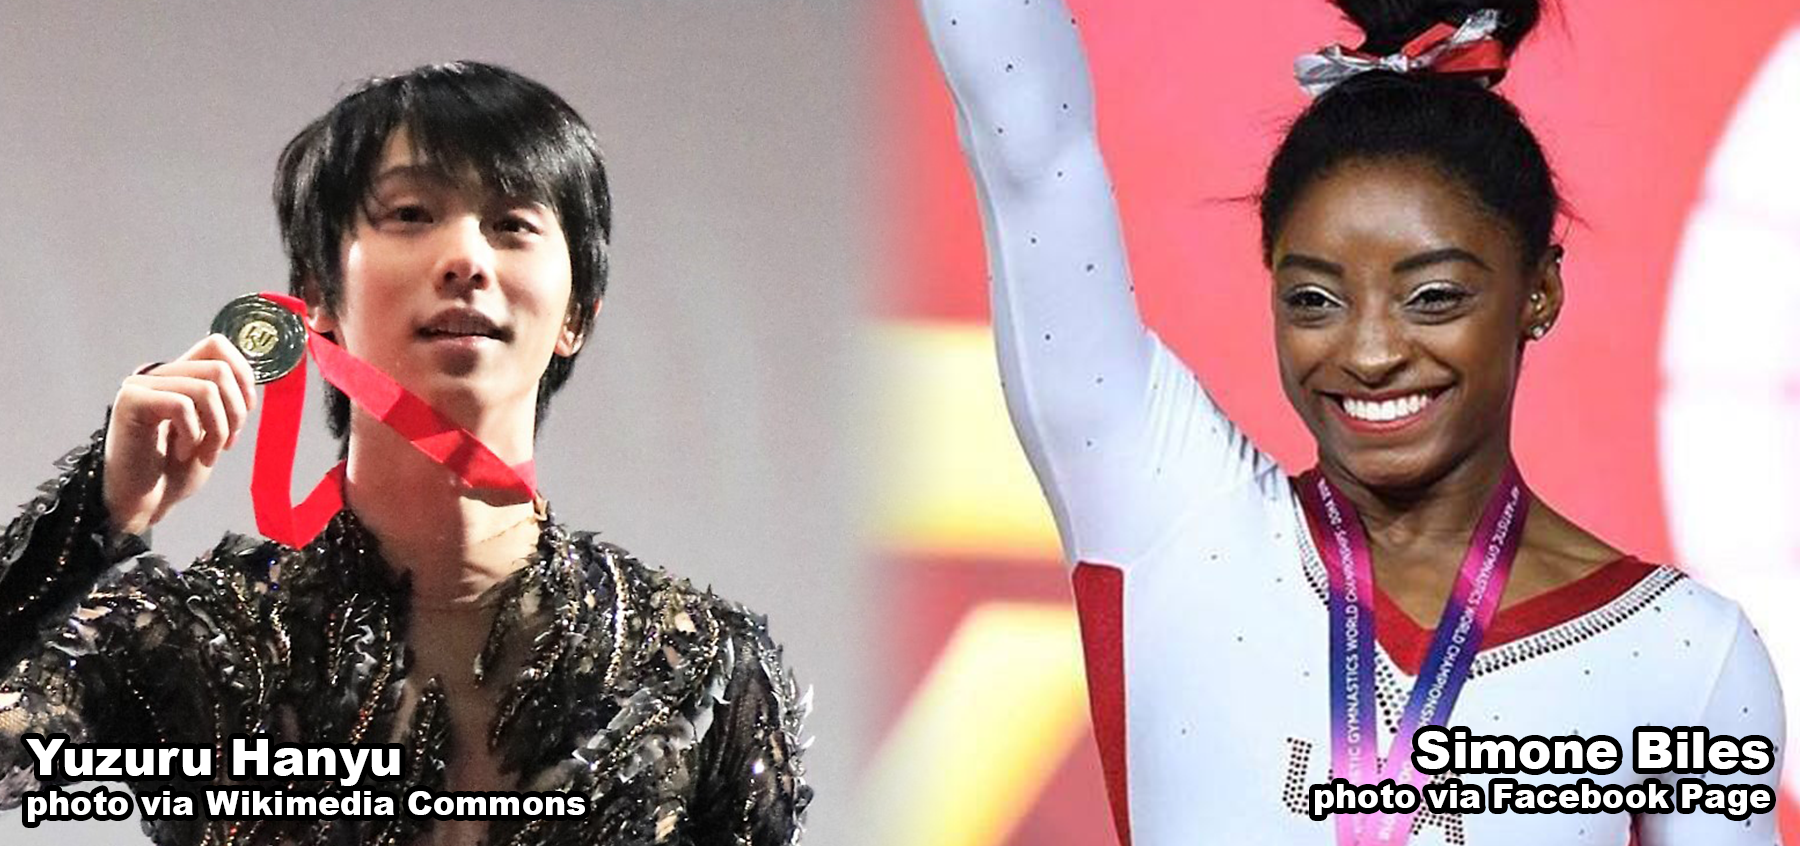 Yuzuru Hanyu and Simone Biles